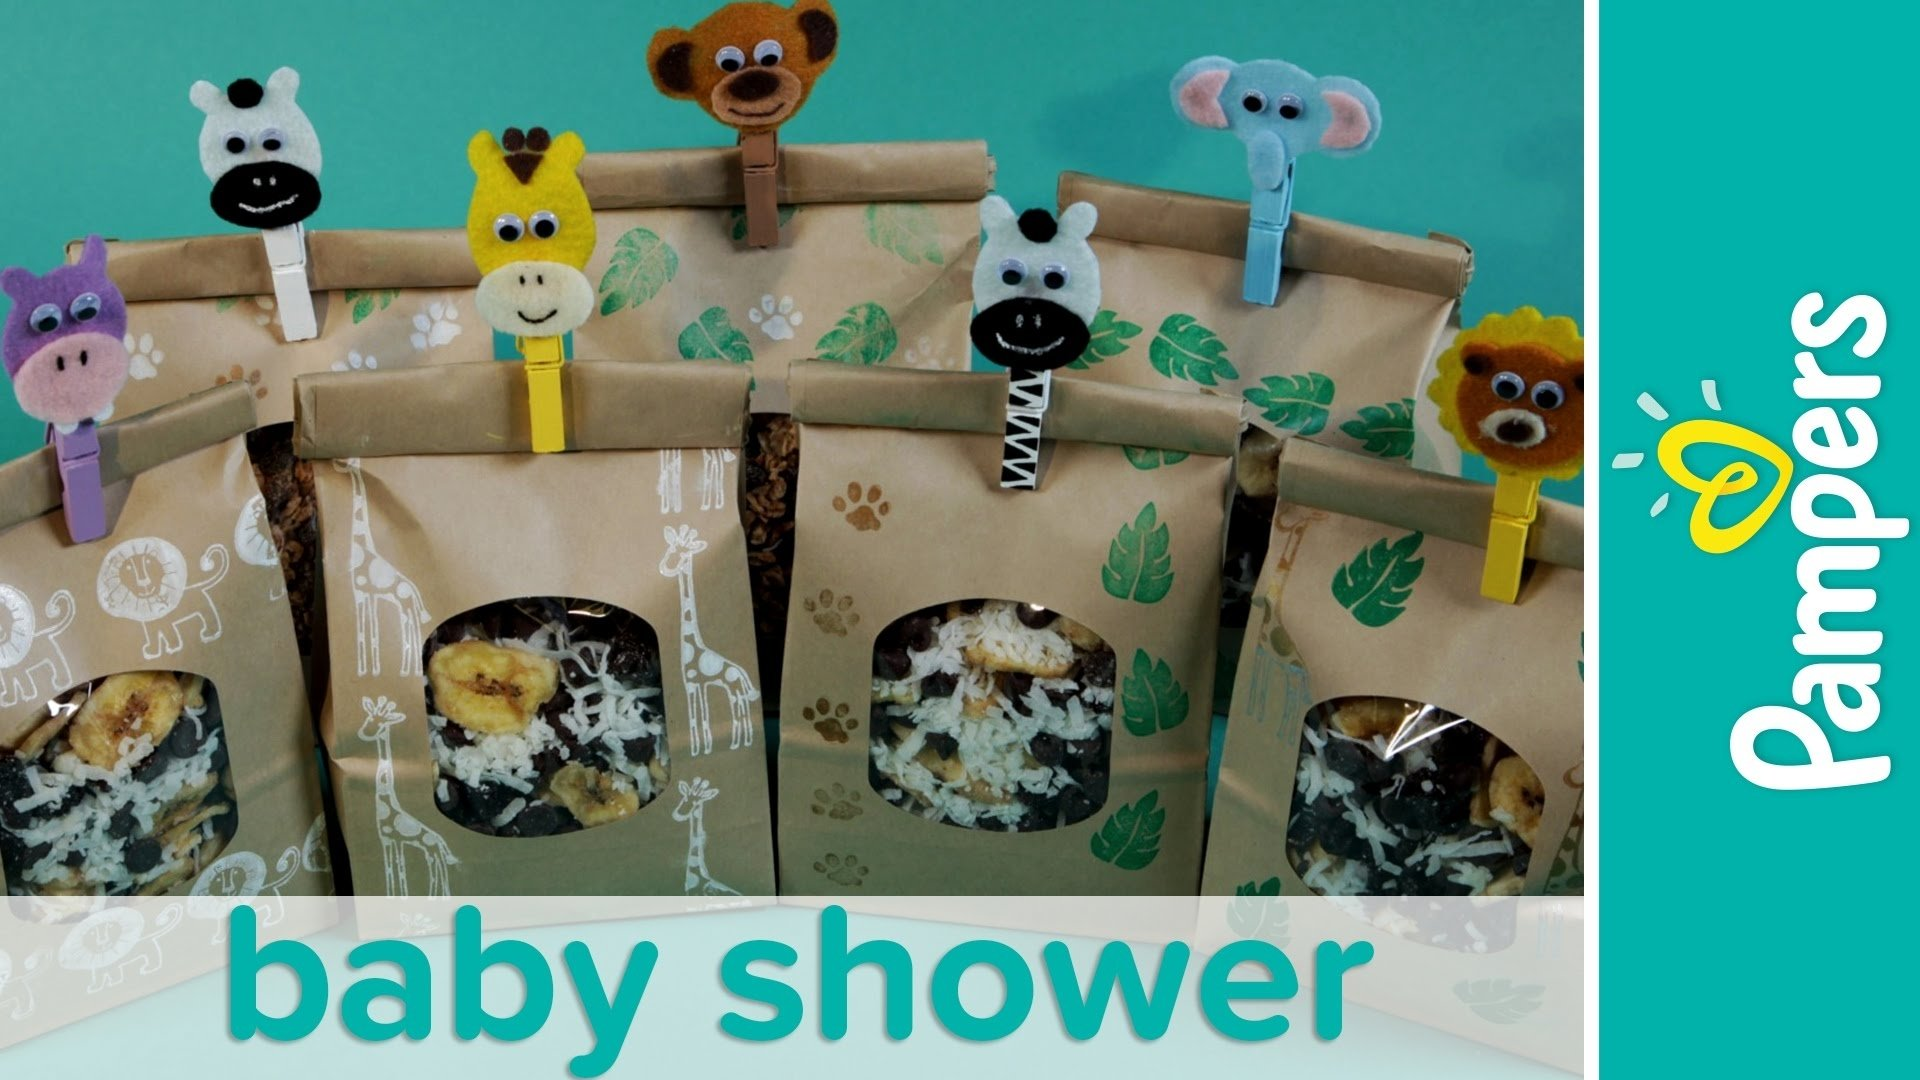 10 Awesome Jungle Themed Baby Shower Ideas jungle theme baby shower favor ideas homemade trail mix recipe 2